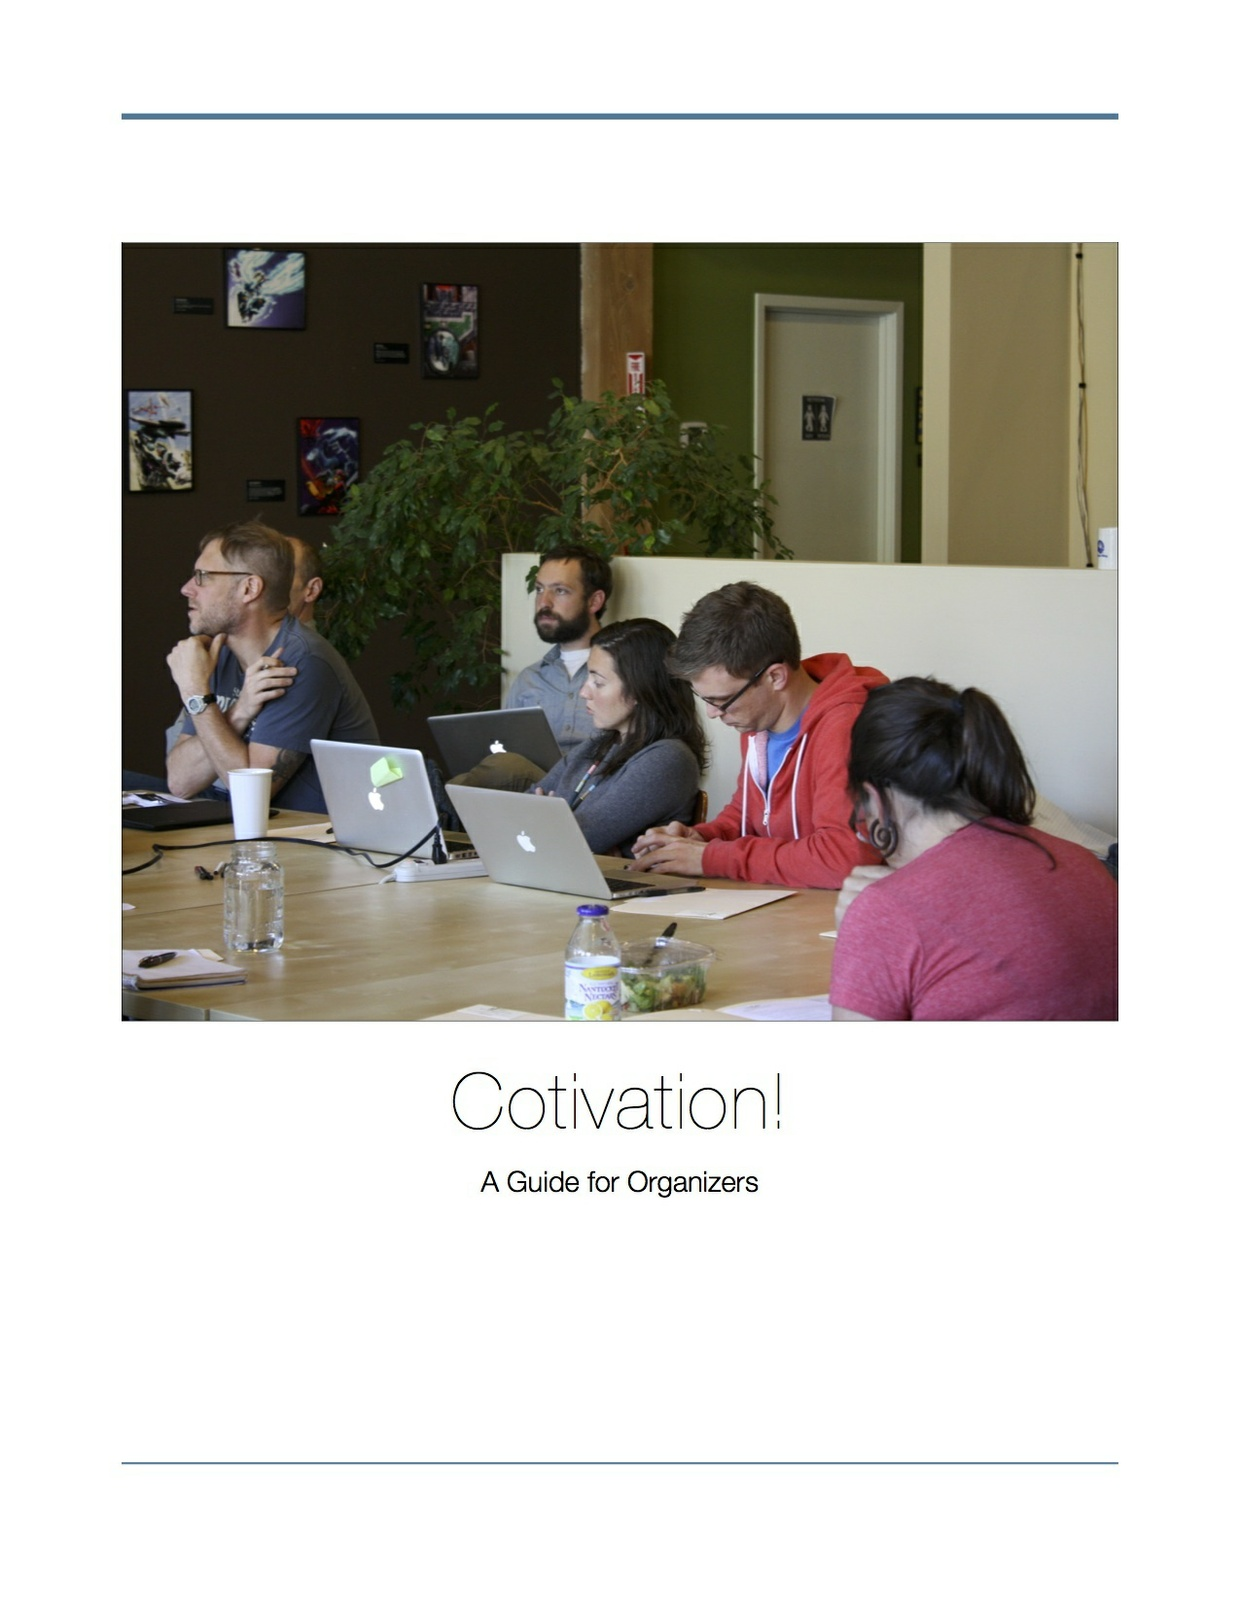 Cotivation Organizers Guide + Logos + Flyers + Promotional Materials = Awesome!